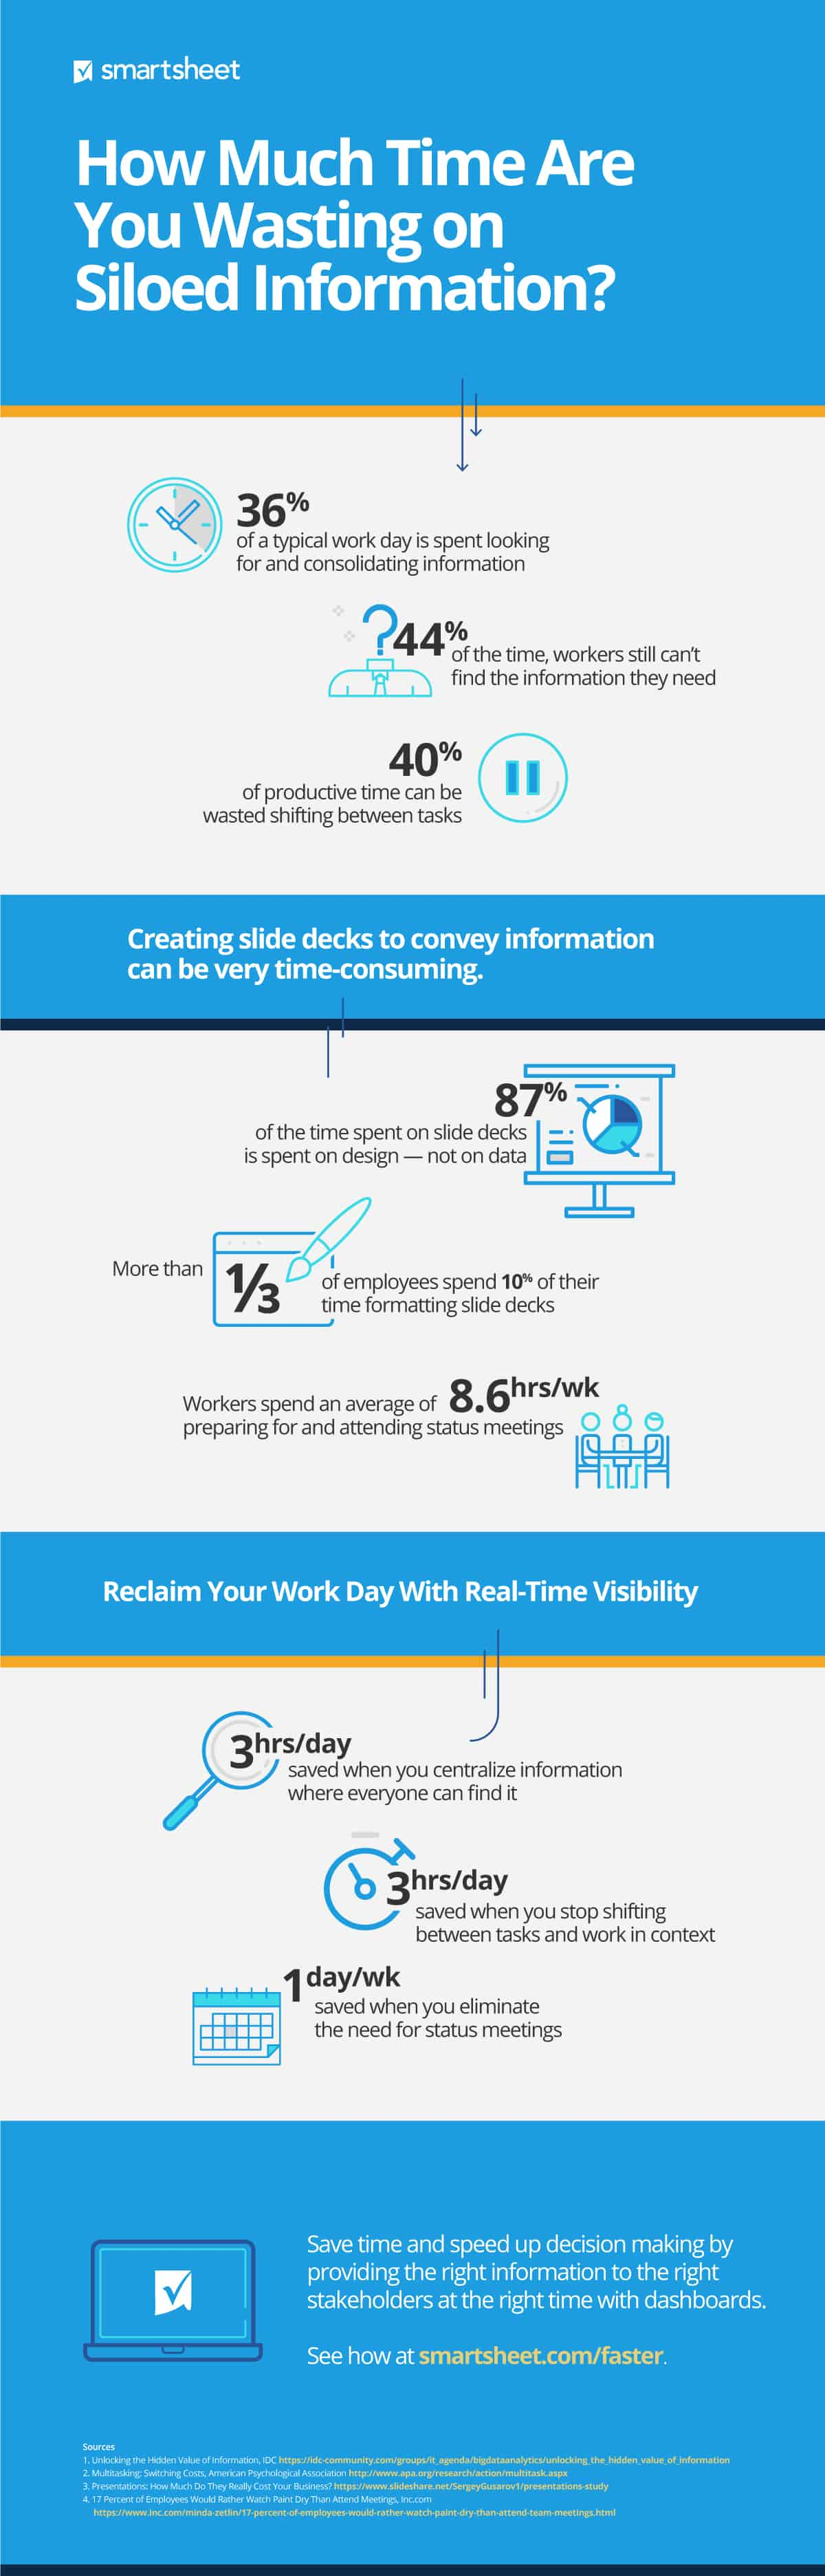 [Infographic] How Much Time Are You Wasting on Siloed Information?